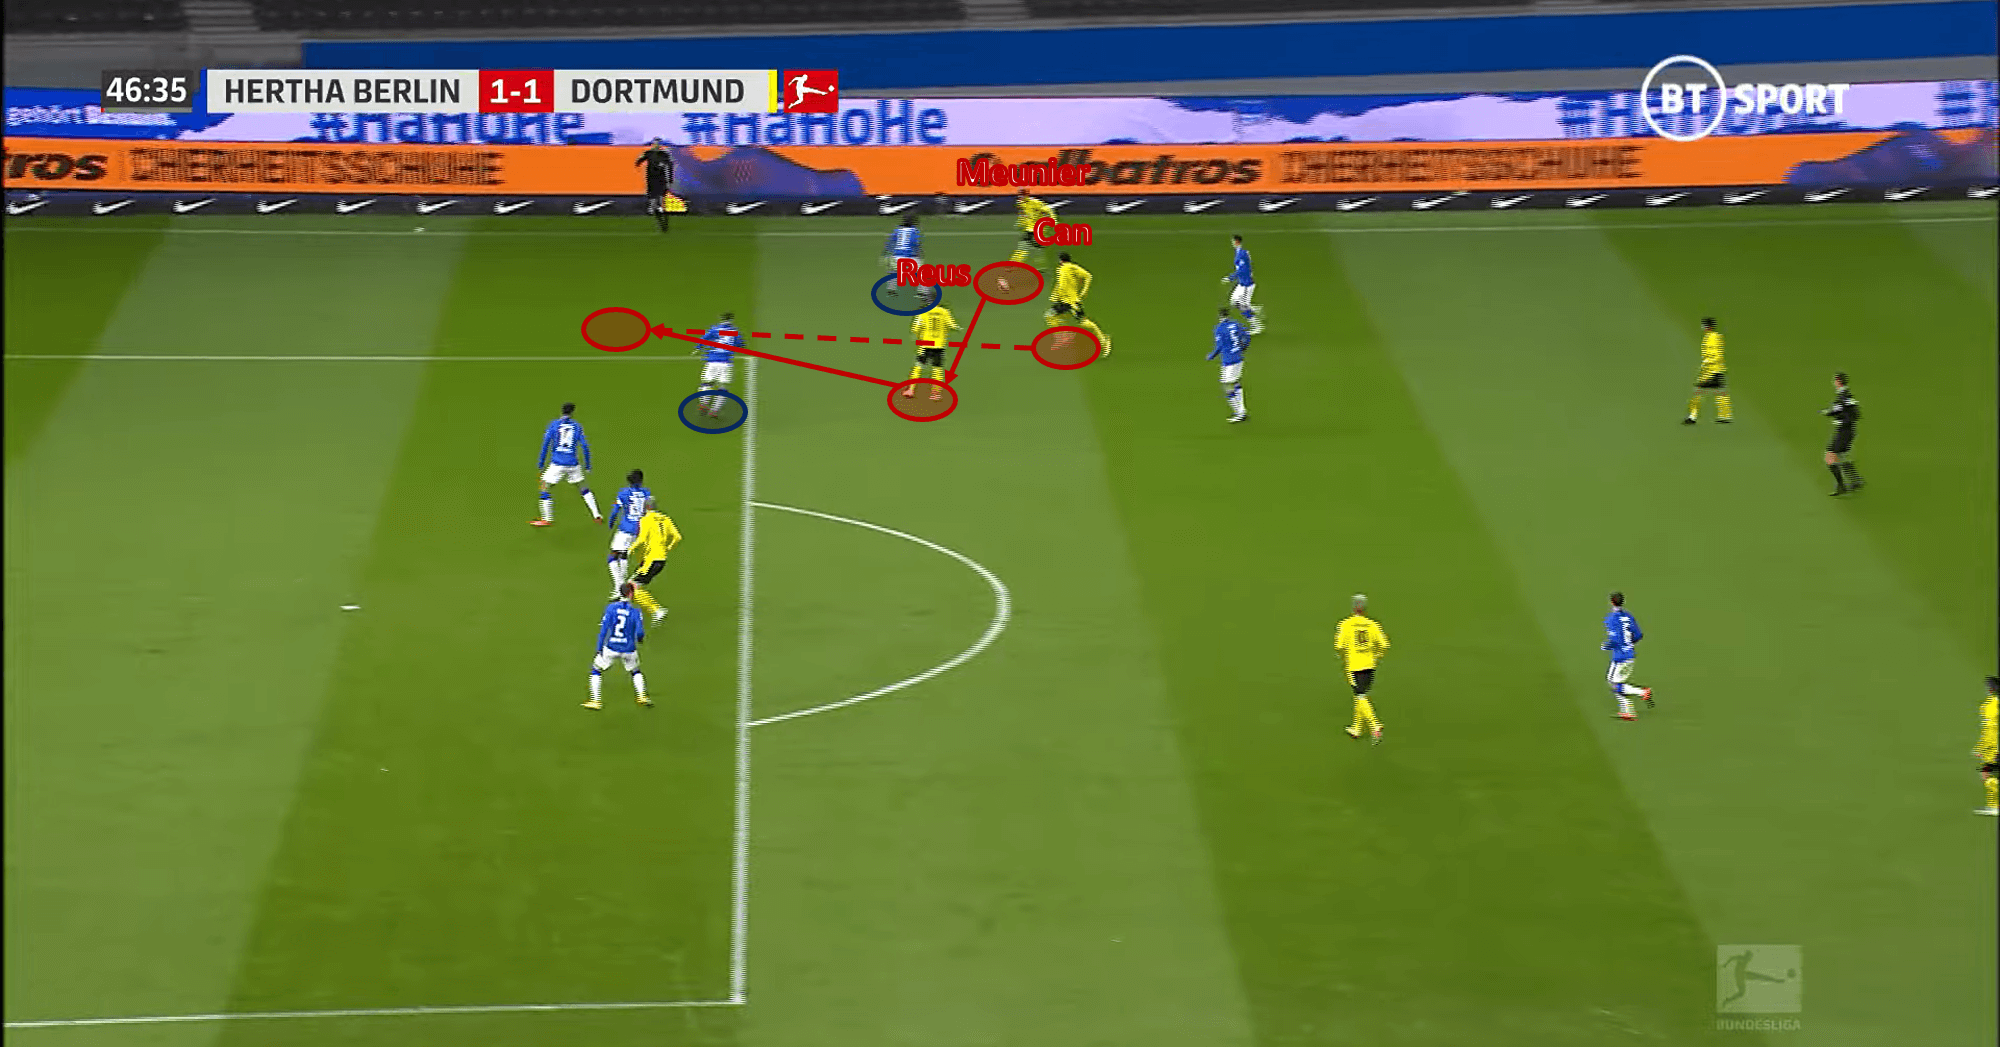 Bundesliga 2020/21: Hertha Berlin vs Borussia Dortmund – tactical analysis - tactics